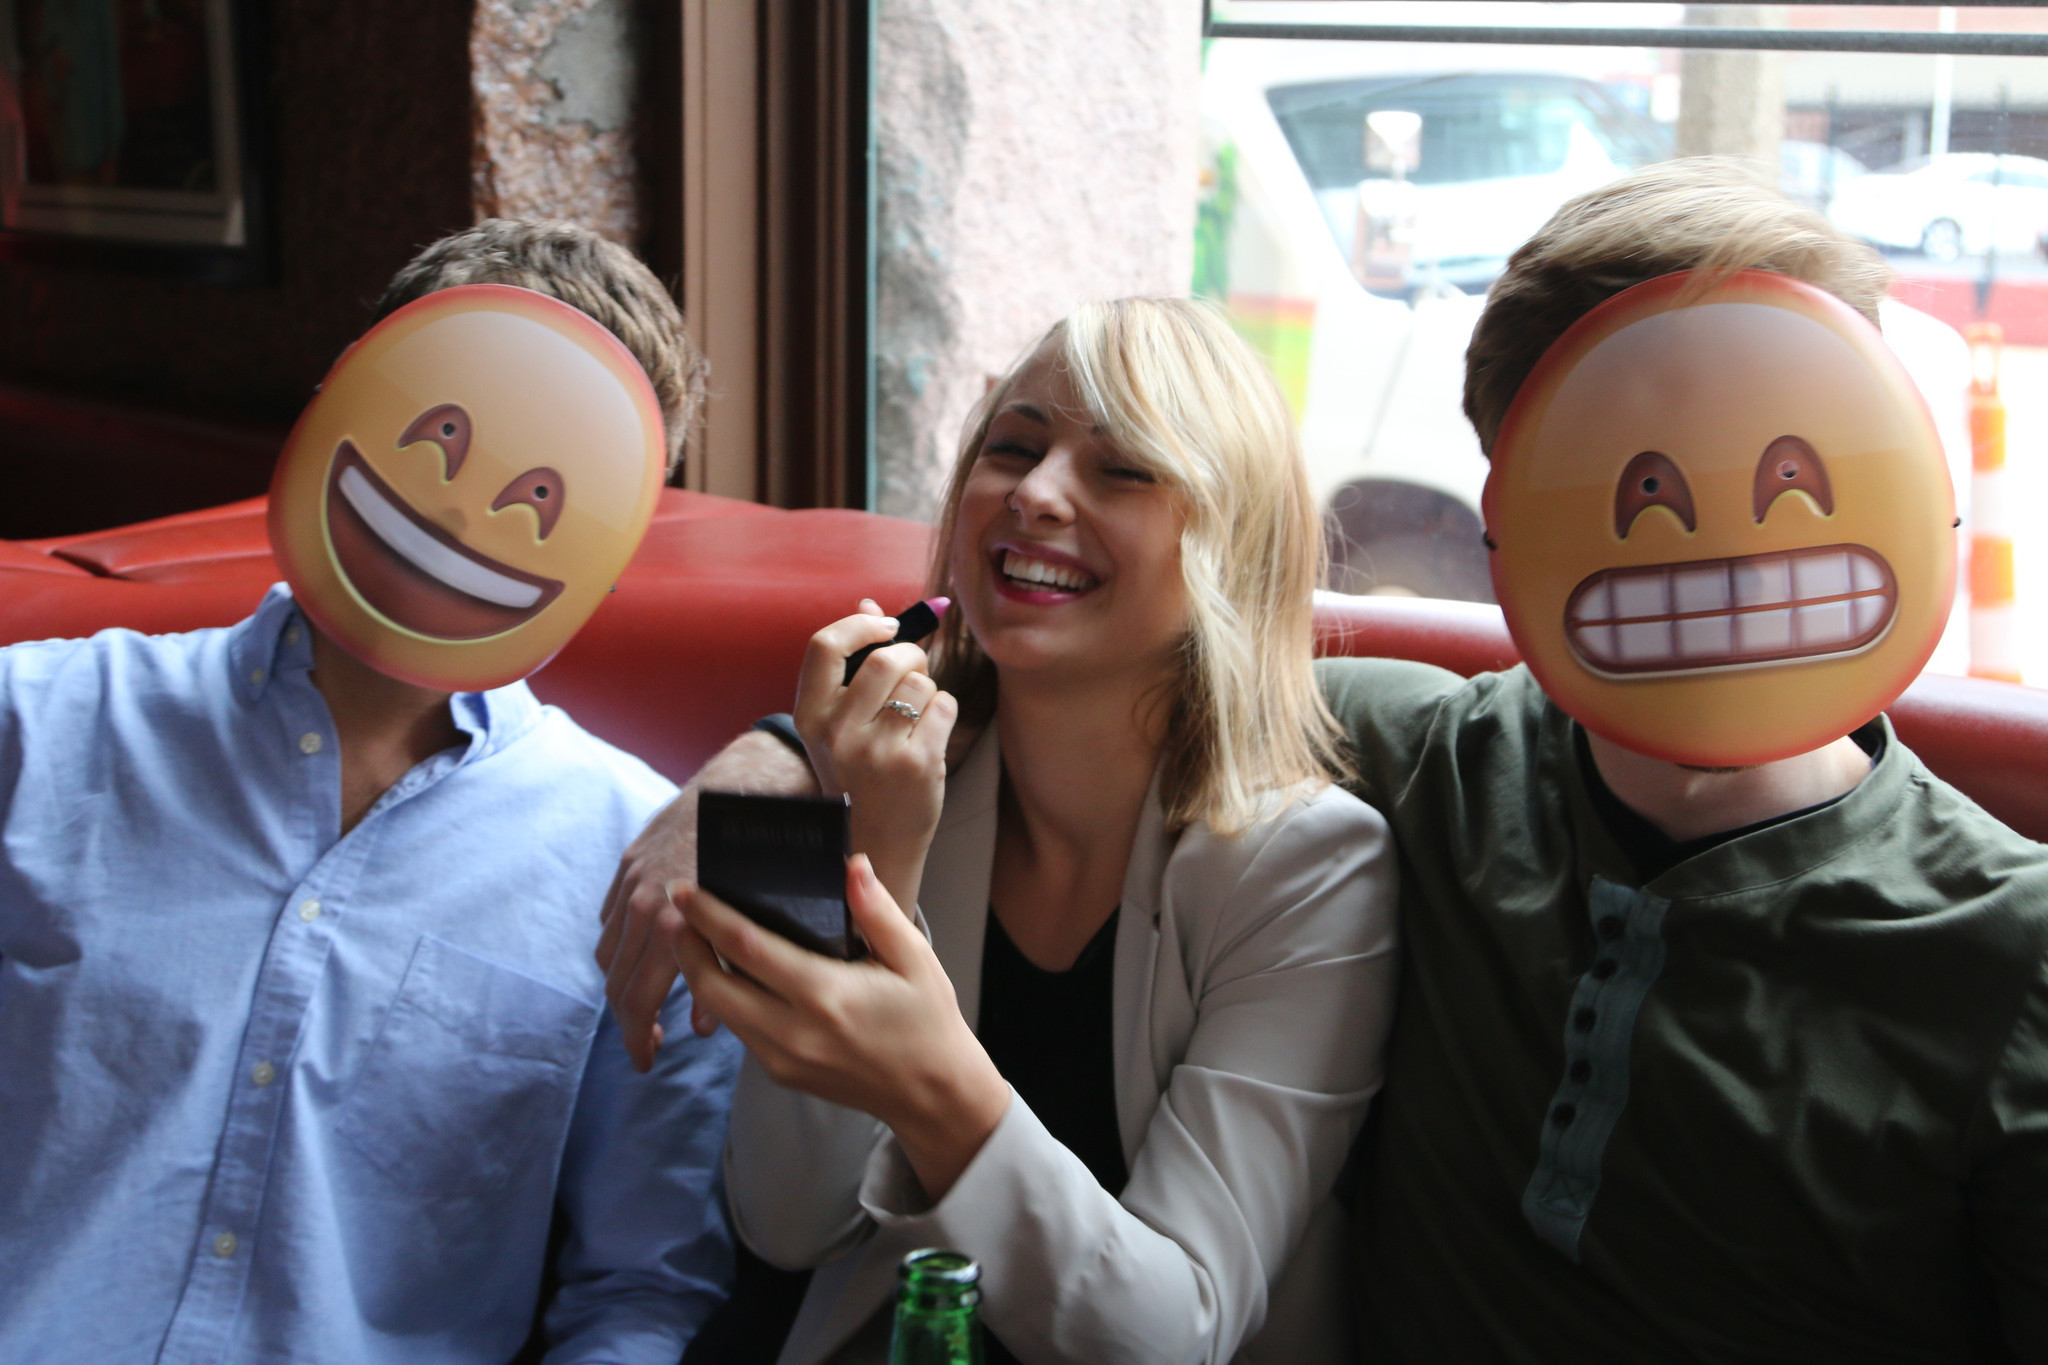 These Emoji Masks Are The Best Halloween Costumes $5 Can Buy